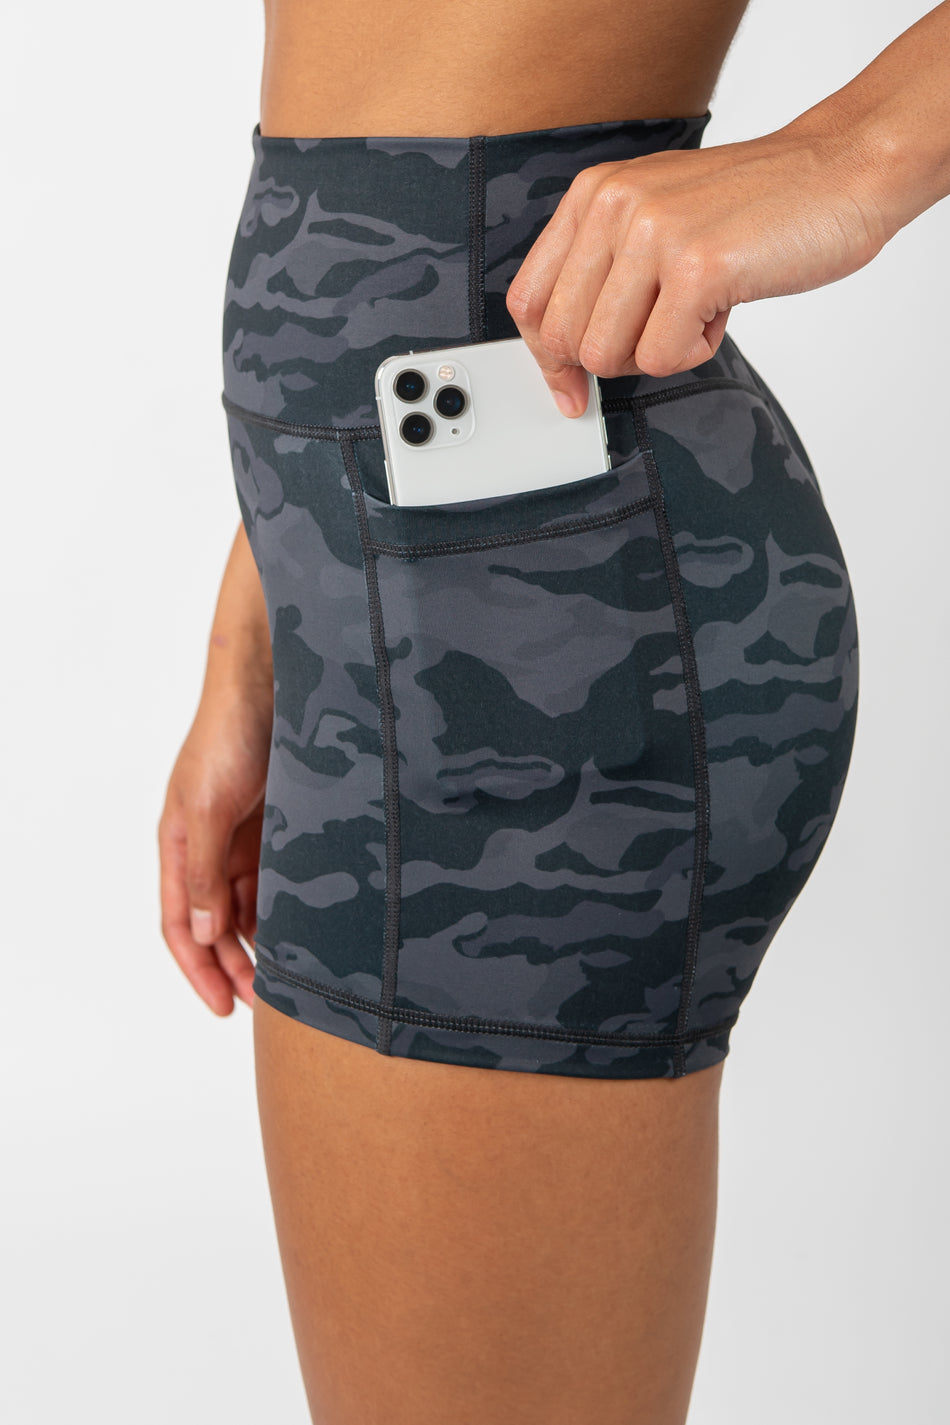 Camo Shorts - Black - WearWolf Clothing UK